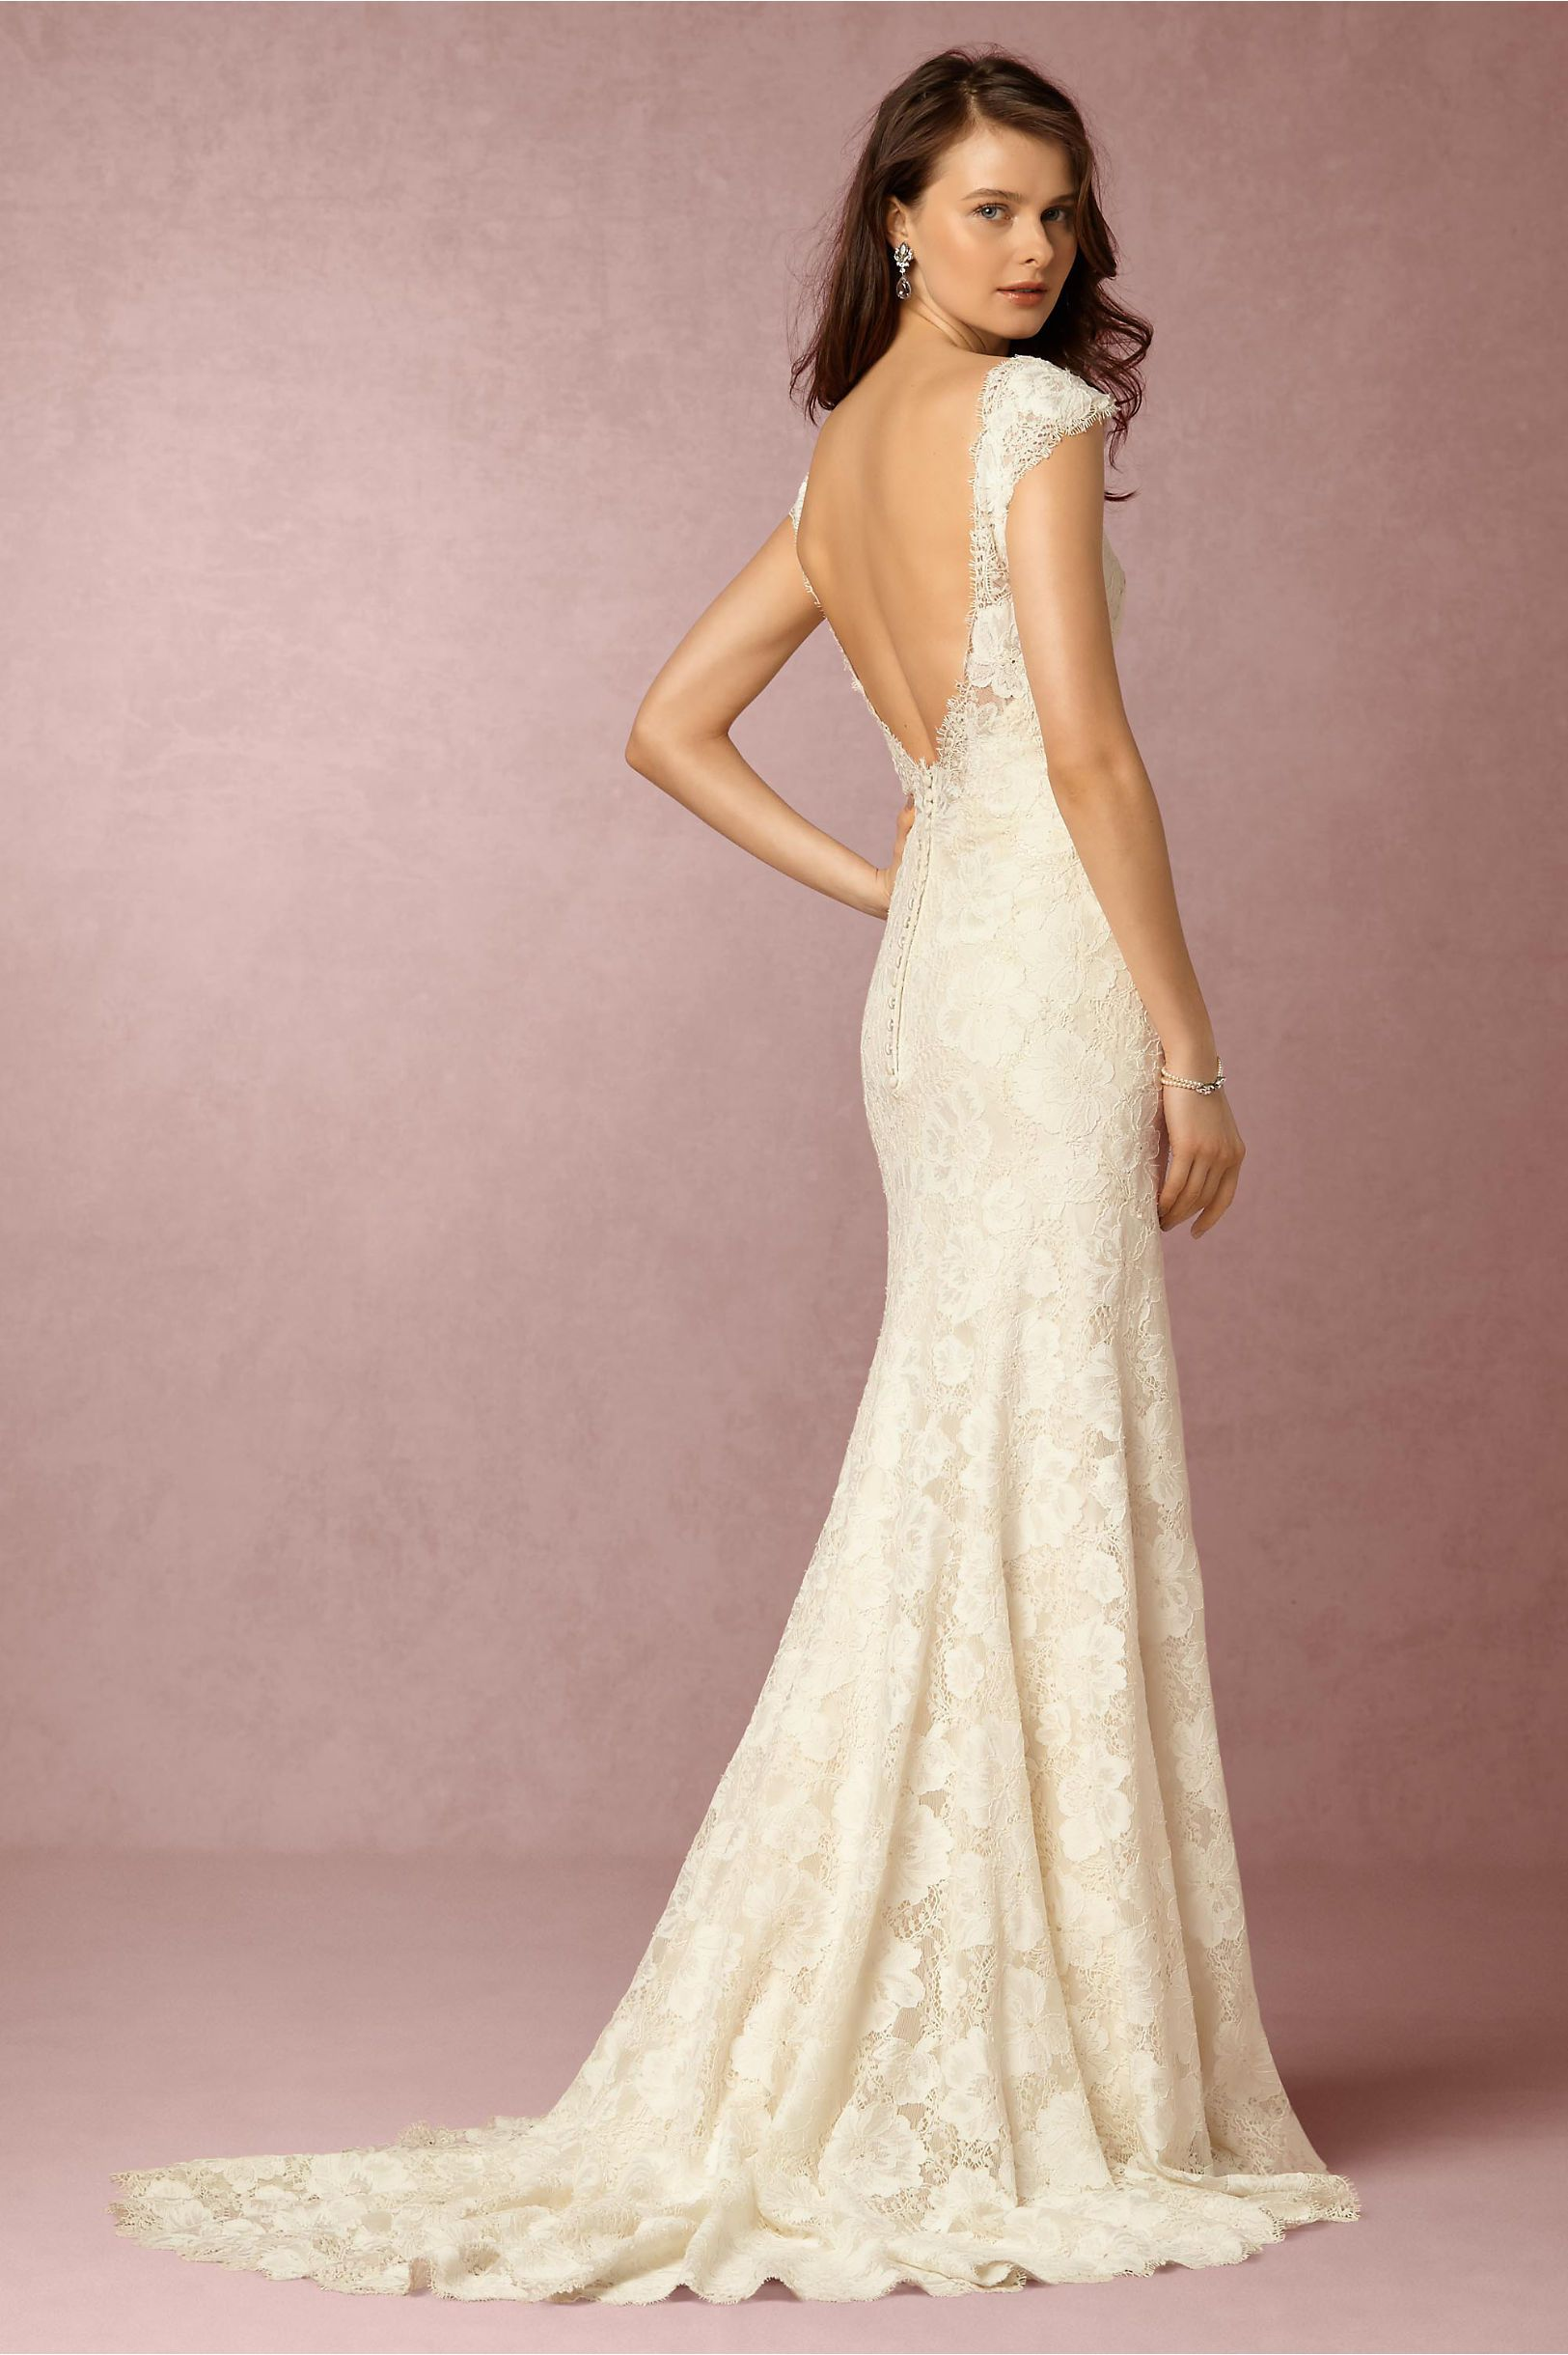 BHLDN Amalia Gown in Bride Wedding Dresses Lace at BHLDN | Vestido ...